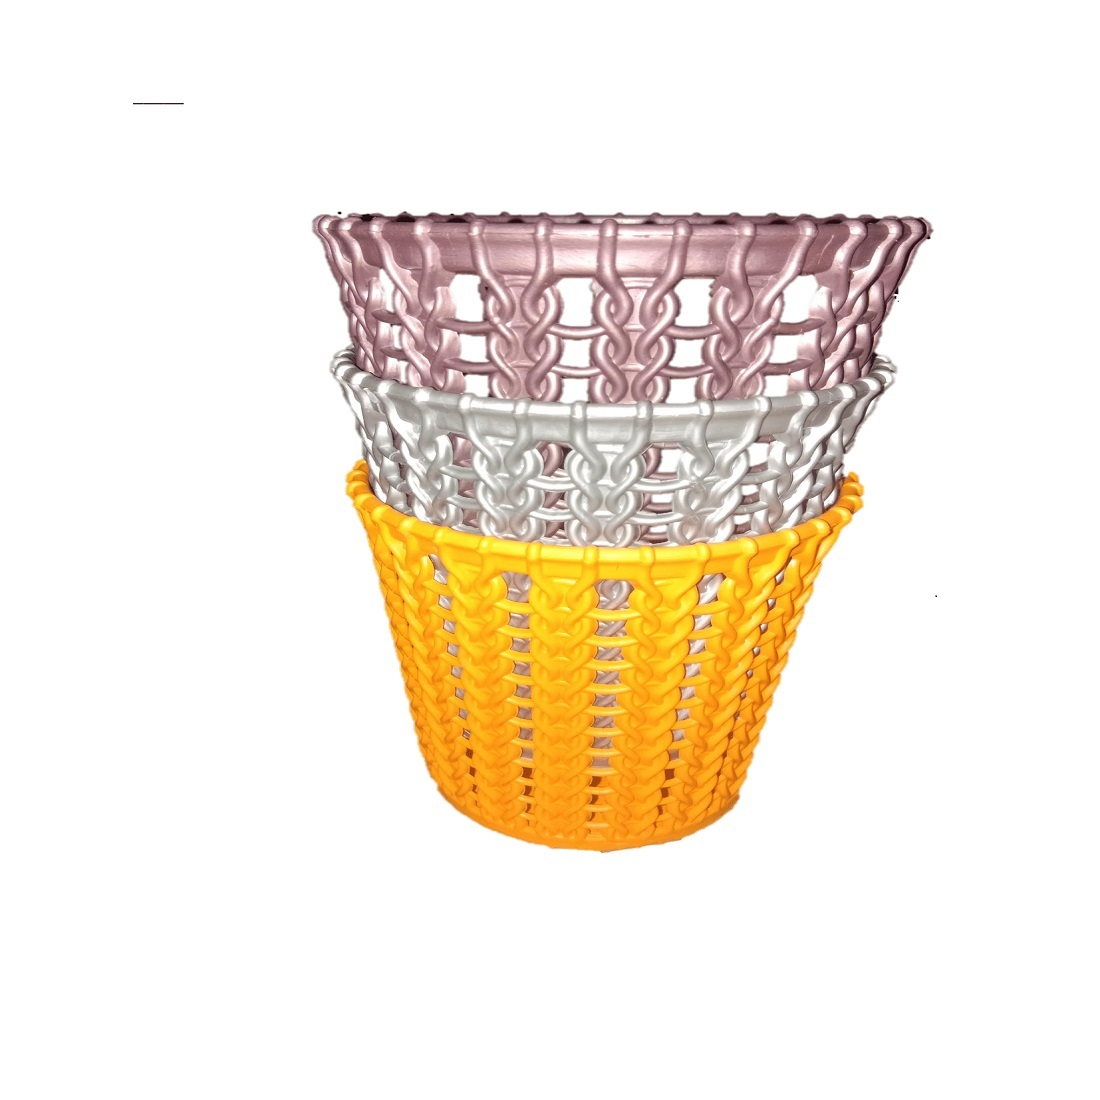 Kitchen tool Or office Table tools organizer Basket style Multicolored Glass